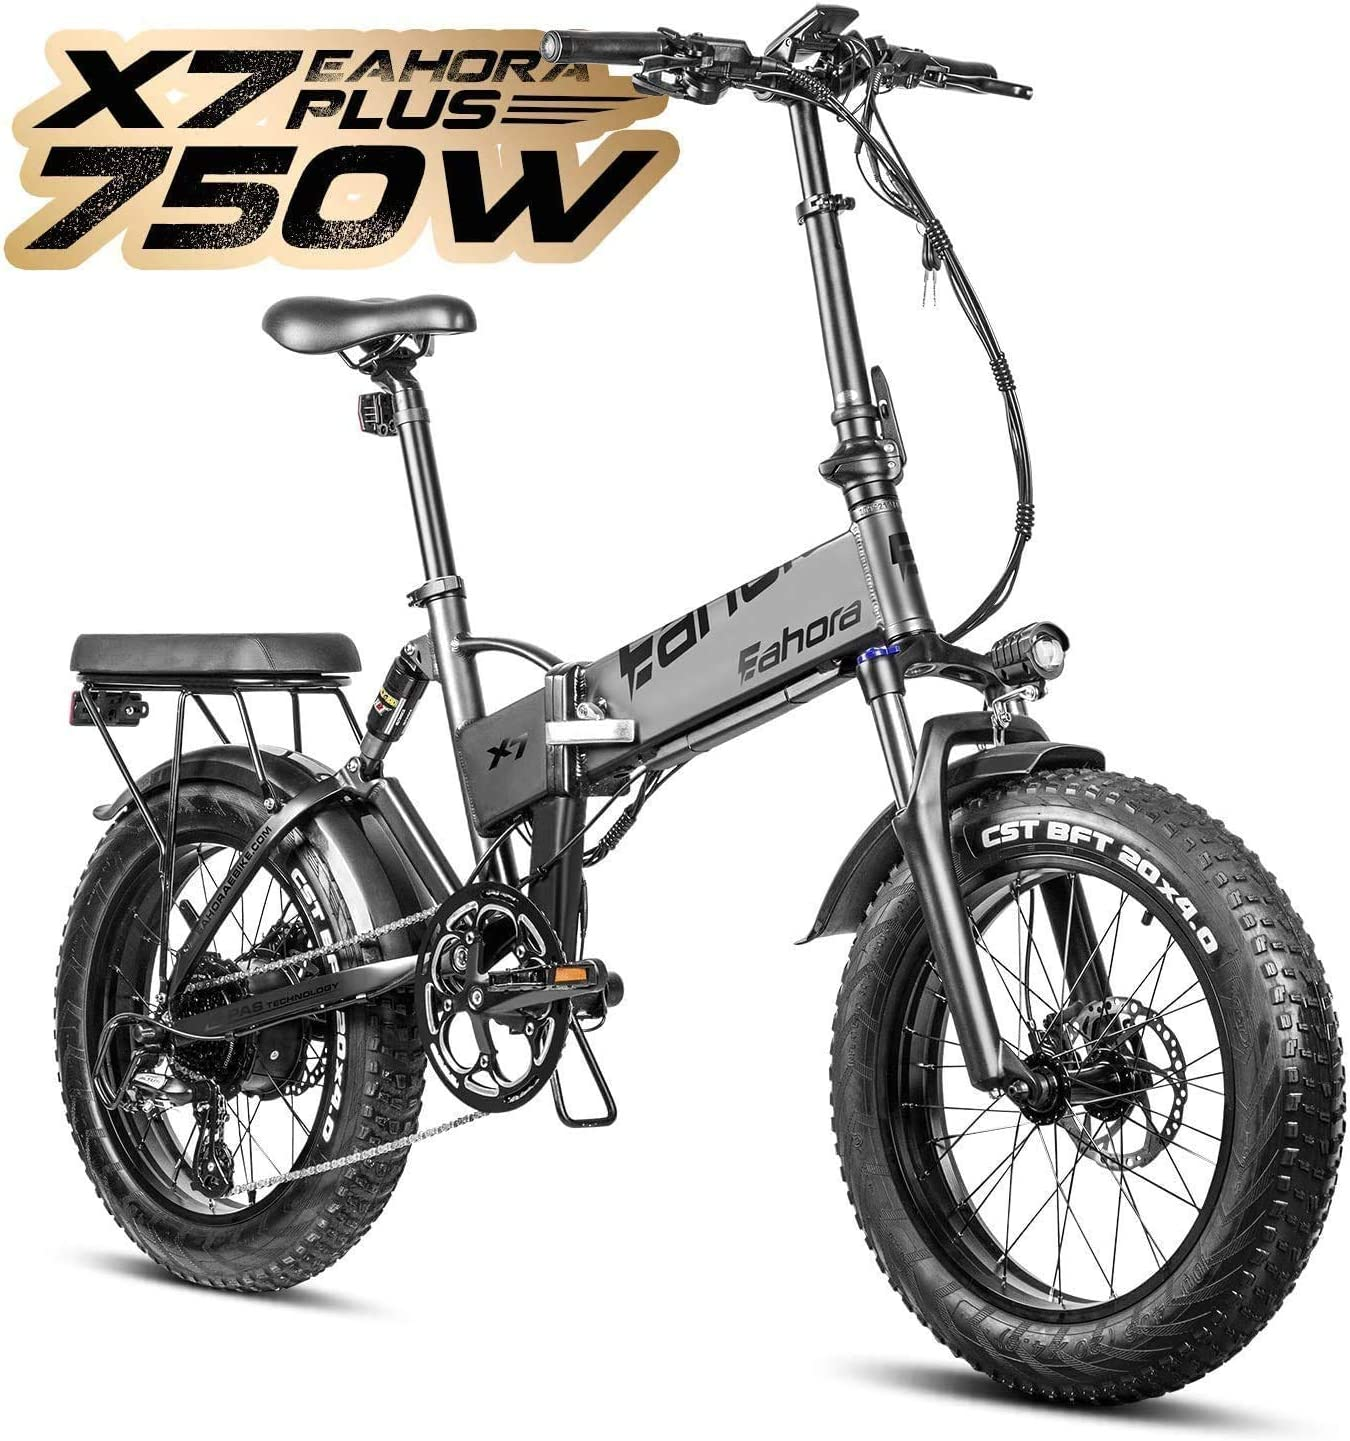 EAHORA Ebike 20 in Electric Bike 750W X7 Plus Folding Ebike for Adults 48V Lithium Battery Great Hydraulic Brakes and Full Suspension with Electric Lock Power Regeneration System and Cruise Control